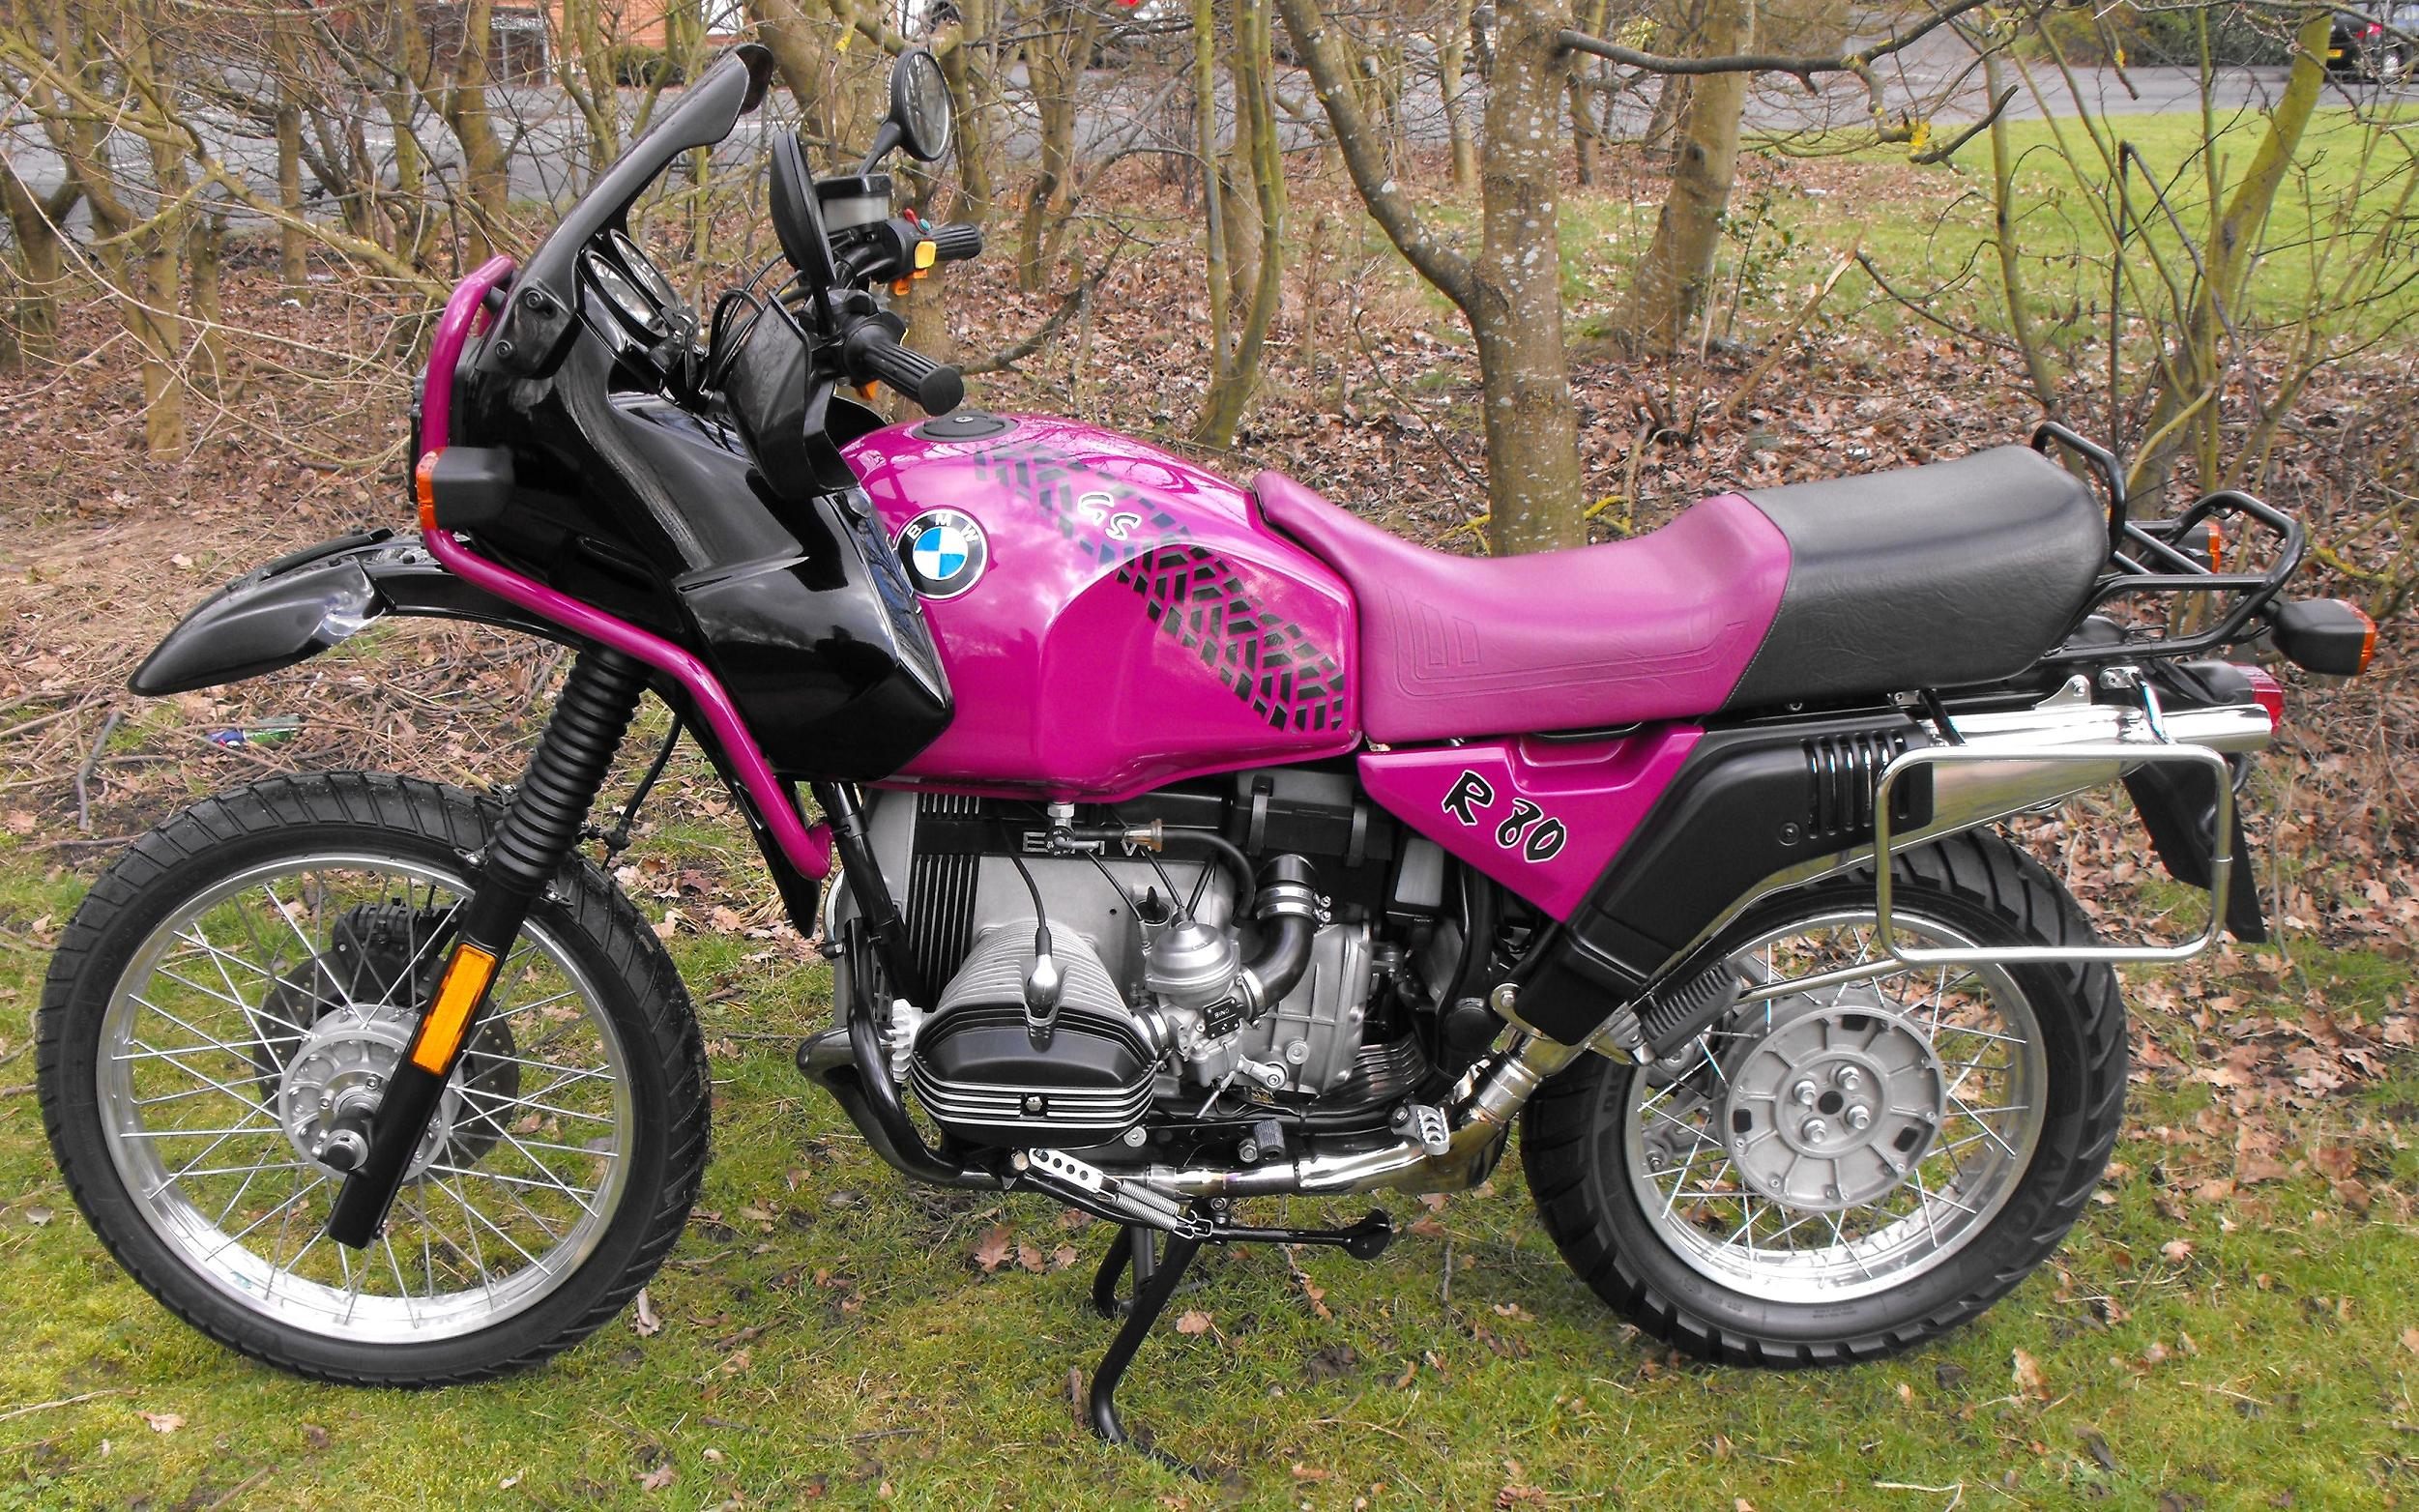 BMW R80GS 1989 images #6021